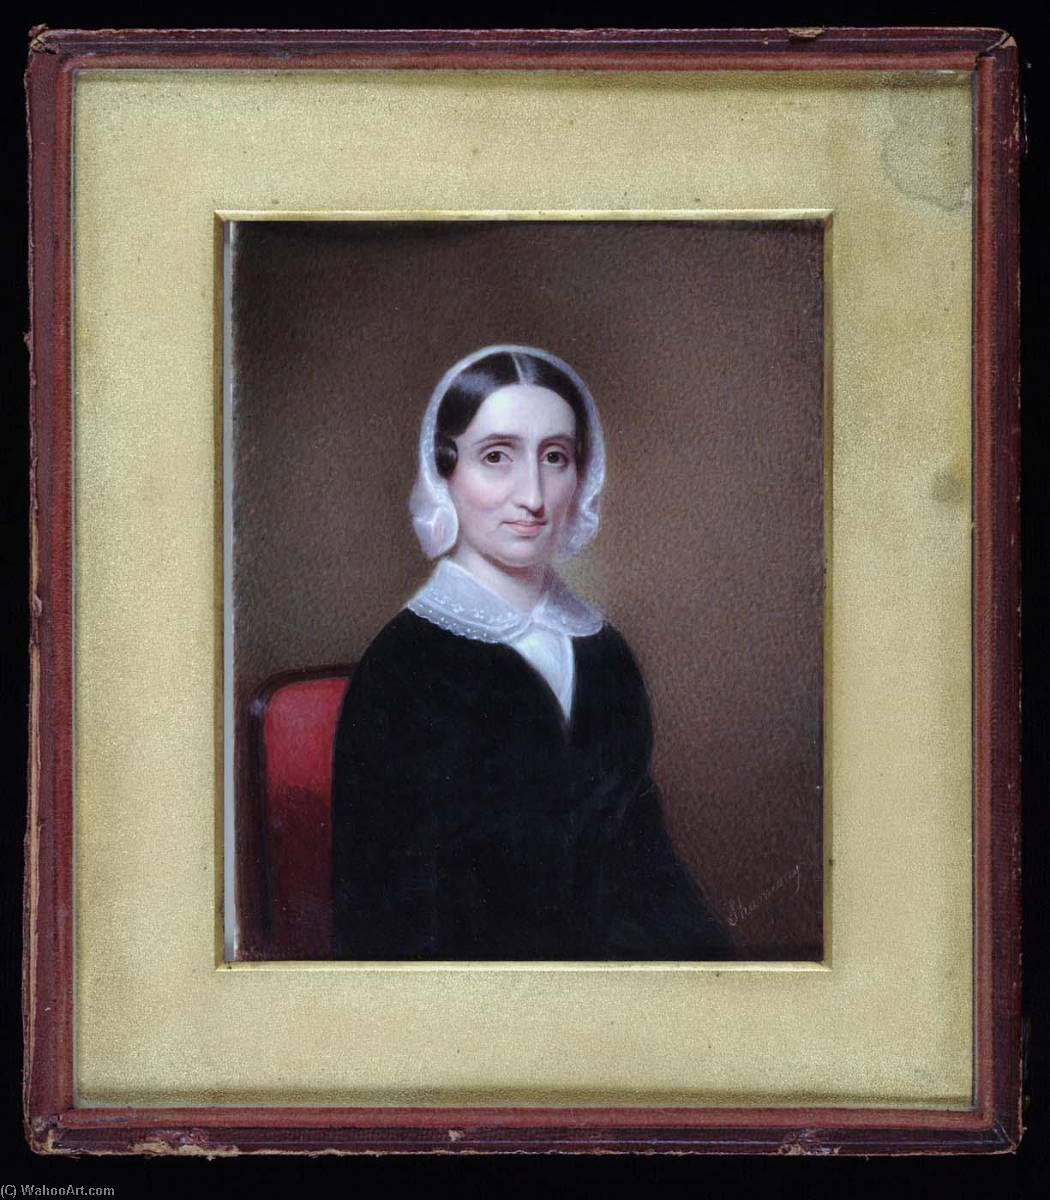 Mrs. James Morris, 1845 by Henry Colton Shumway (1807-1884) | Famous Paintings Reproductions | WahooArt.com